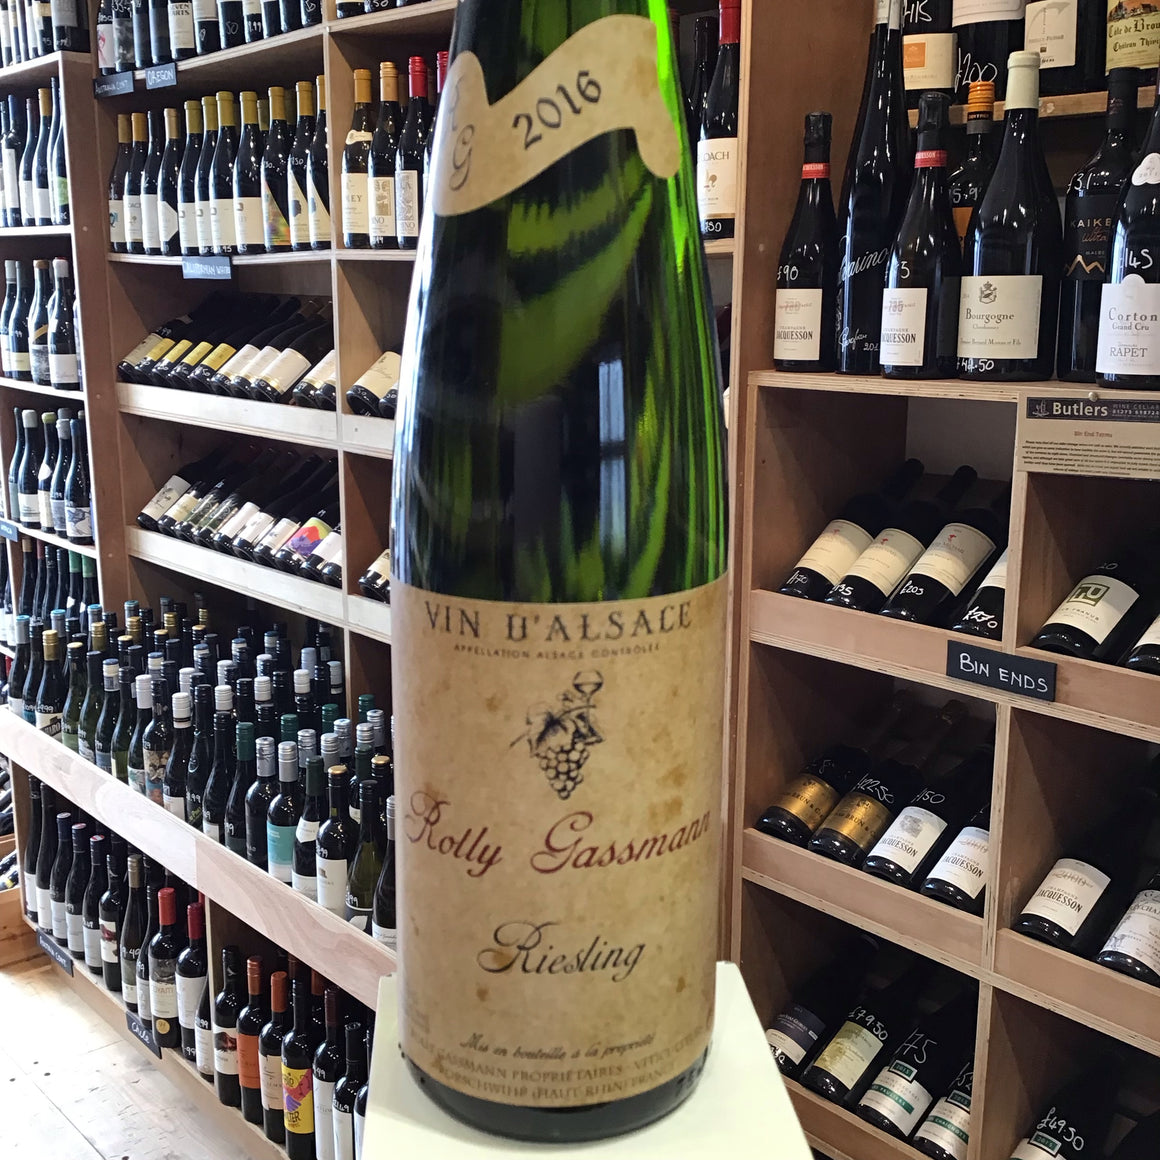 Domaine Rolly Gassmann Riesling 2016 - Butlers Wine Cellar Brighton